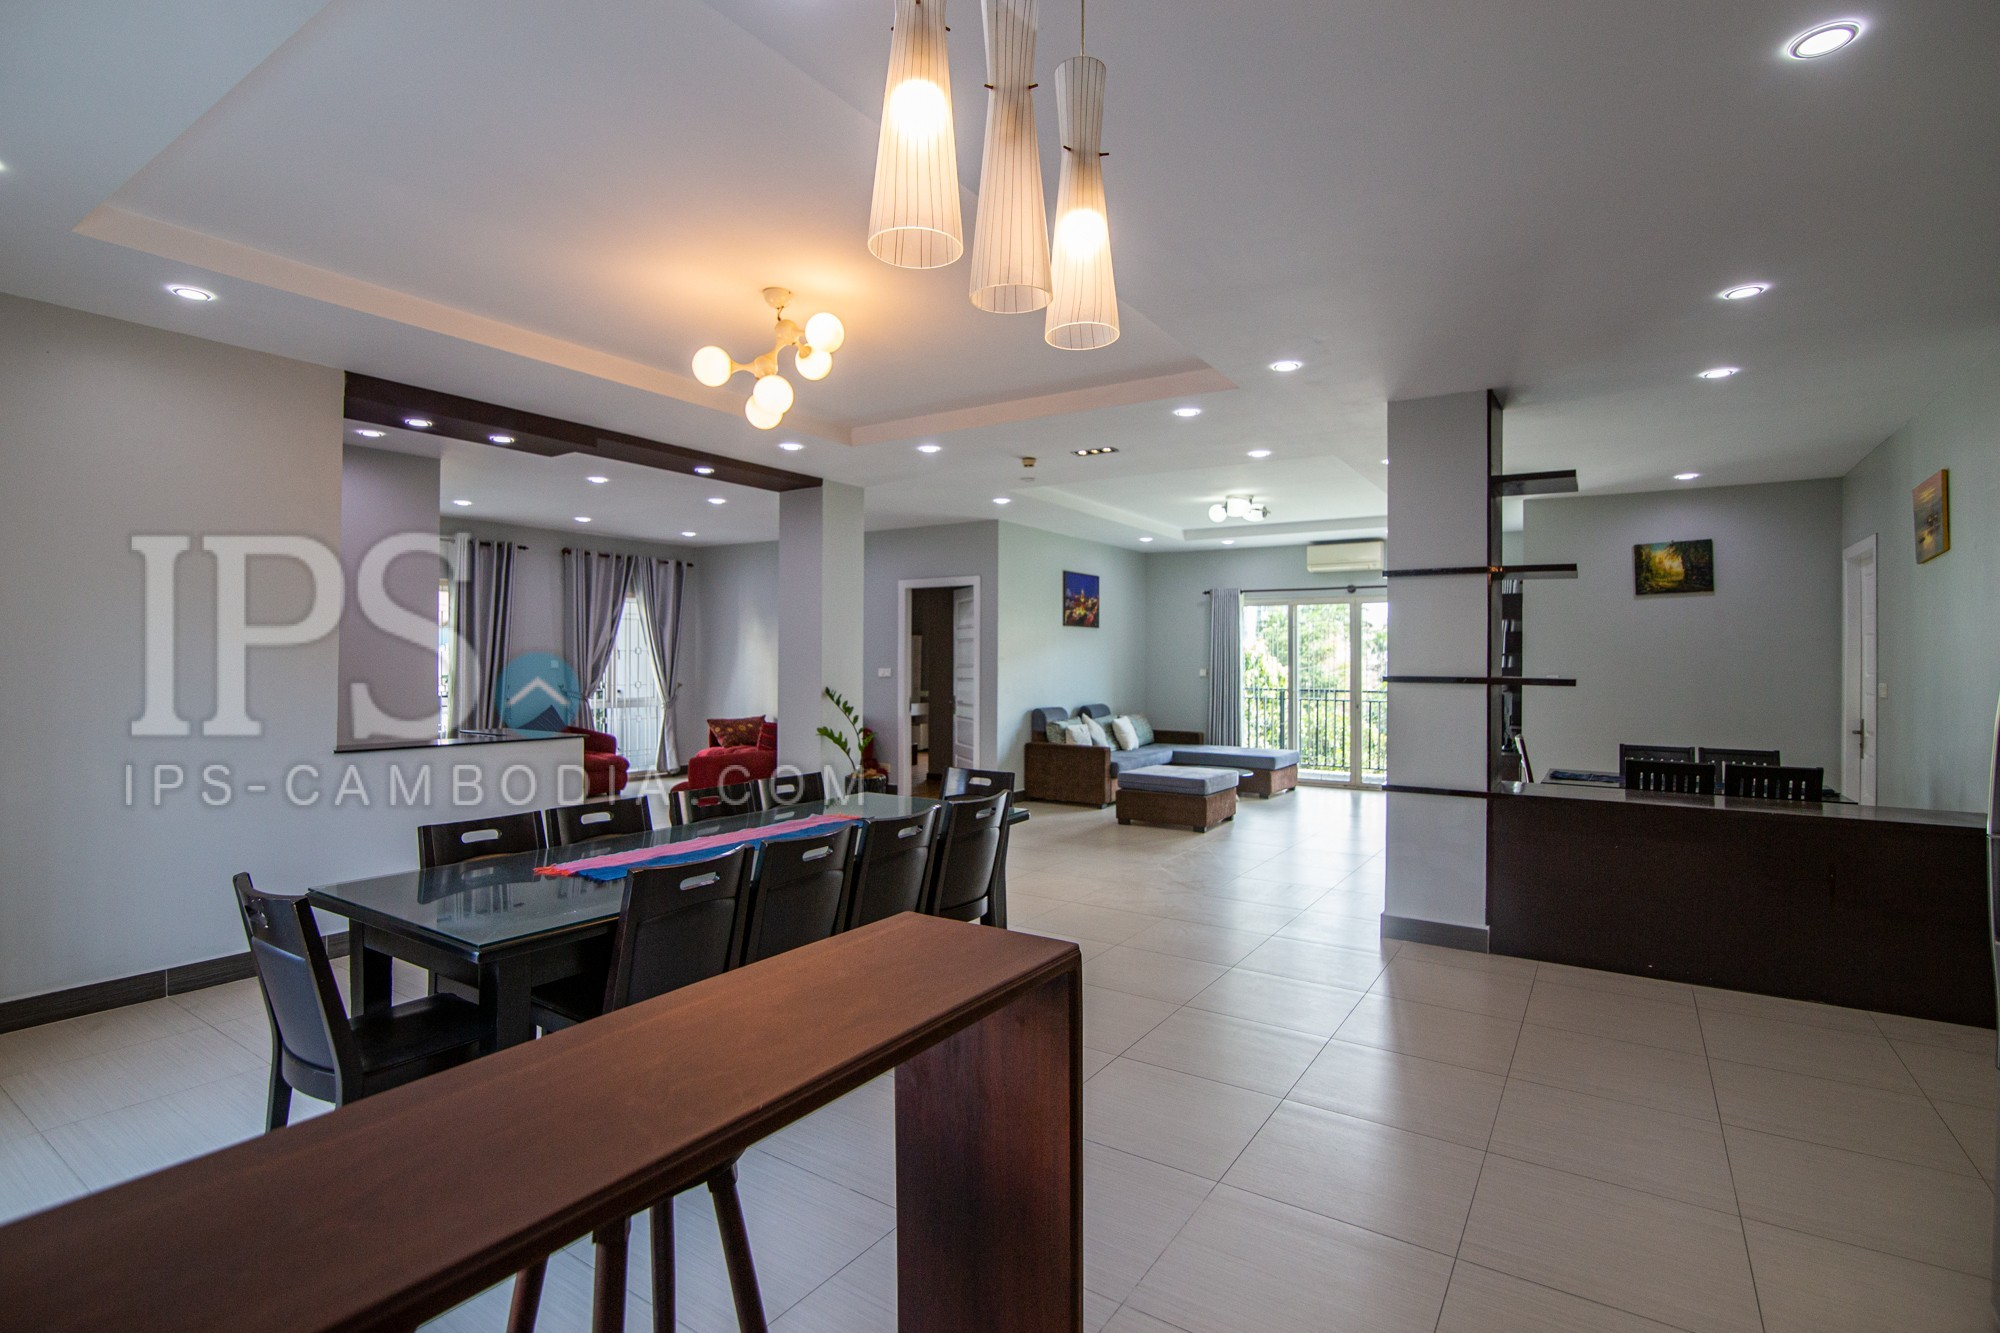 4 Bedroom Apartment For Rent - Psar Doem Tkov, Phnom Penh